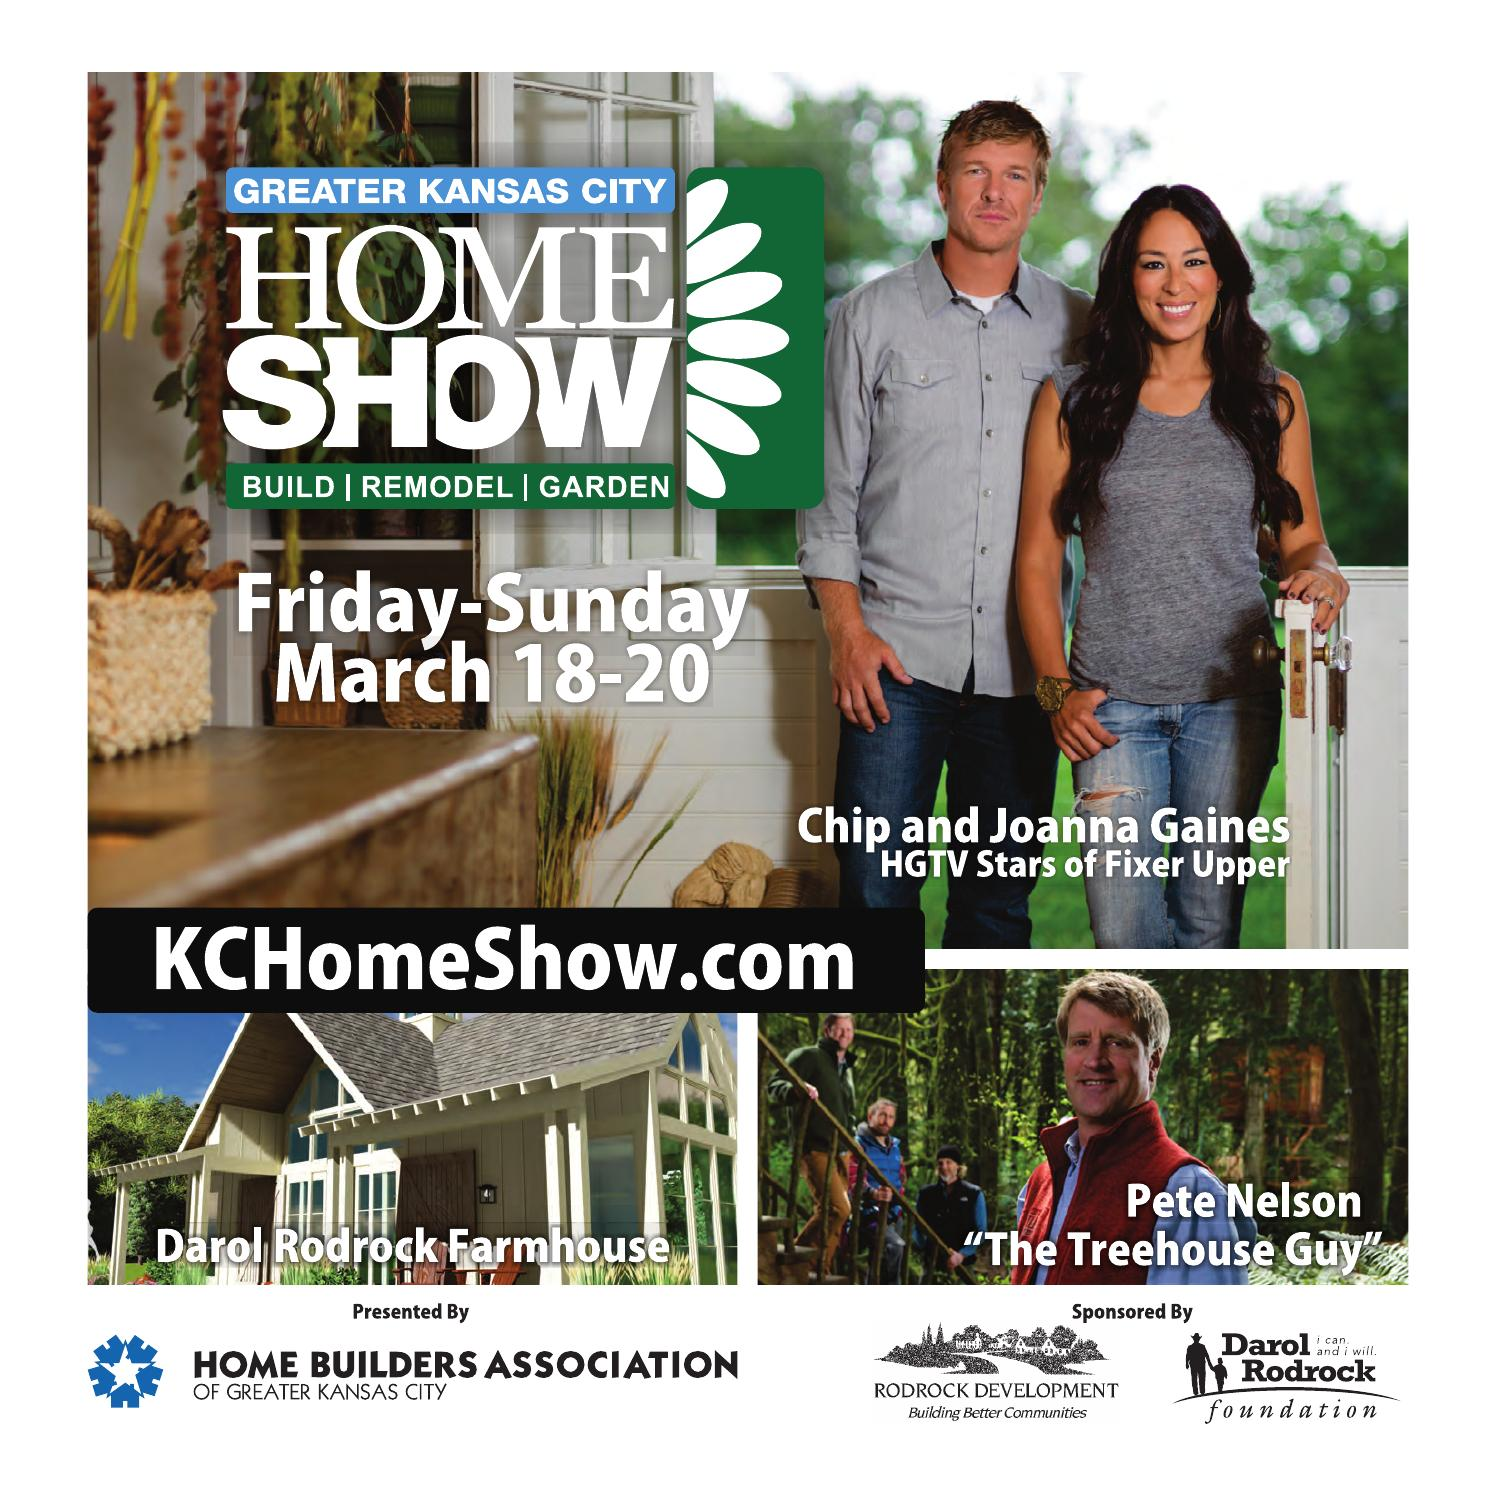 Greater KC Home Show Guide 2016 By Home Builders Association Of Greater Kansas  City   Issuu